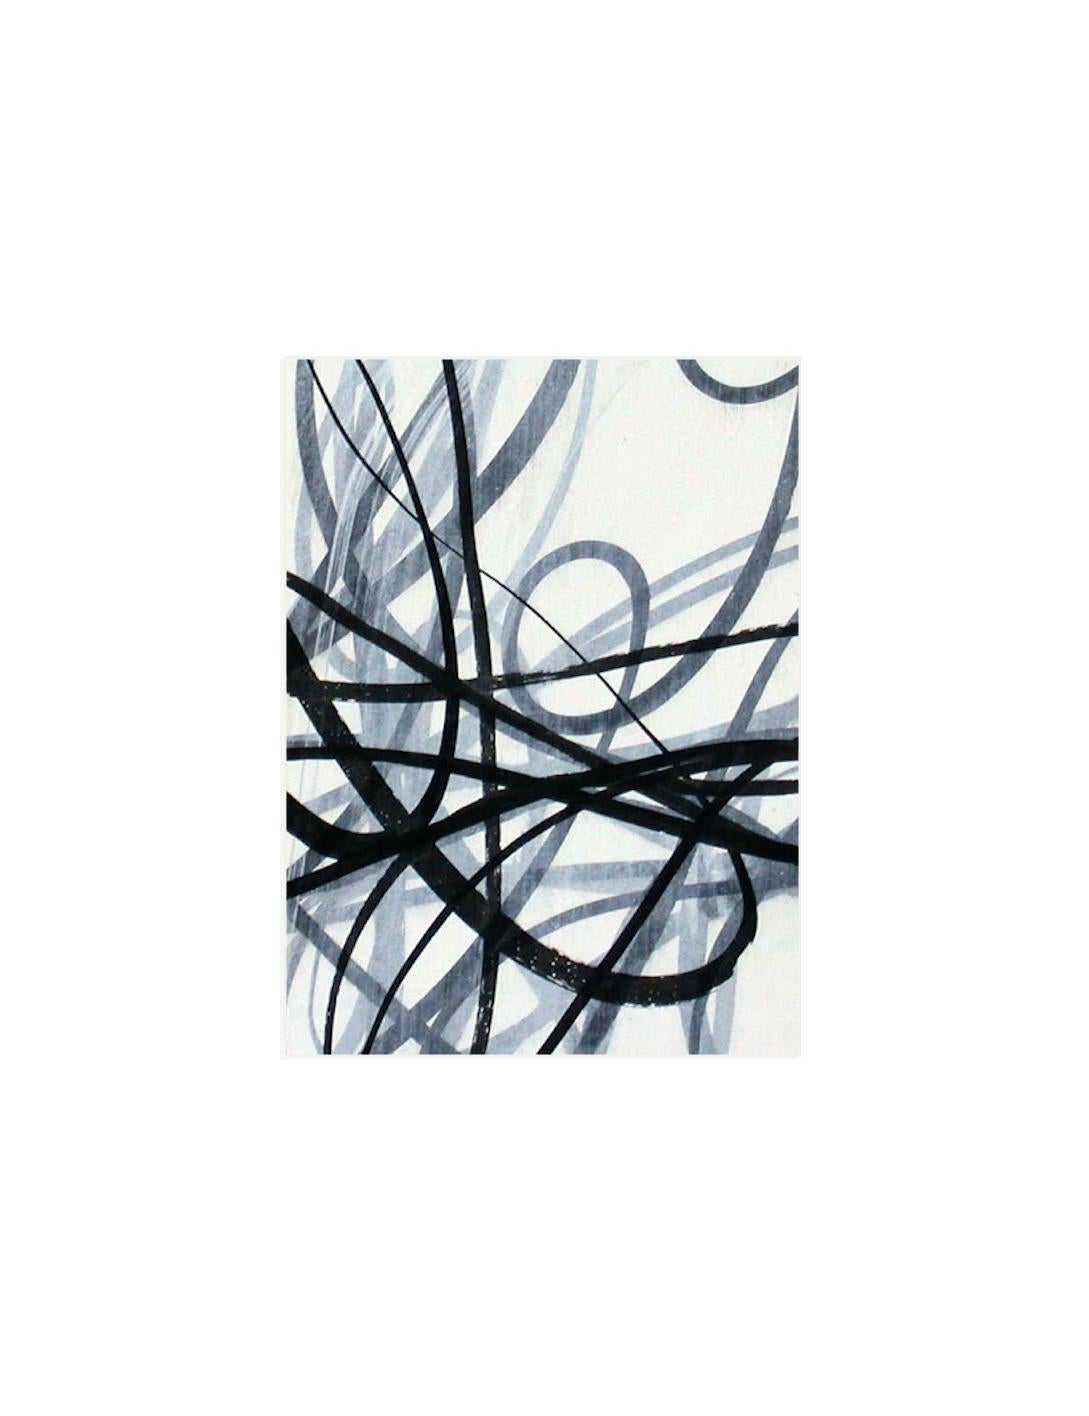 Taking Notes 2 - Graphite on Archival Paper - Abstract Contemporary